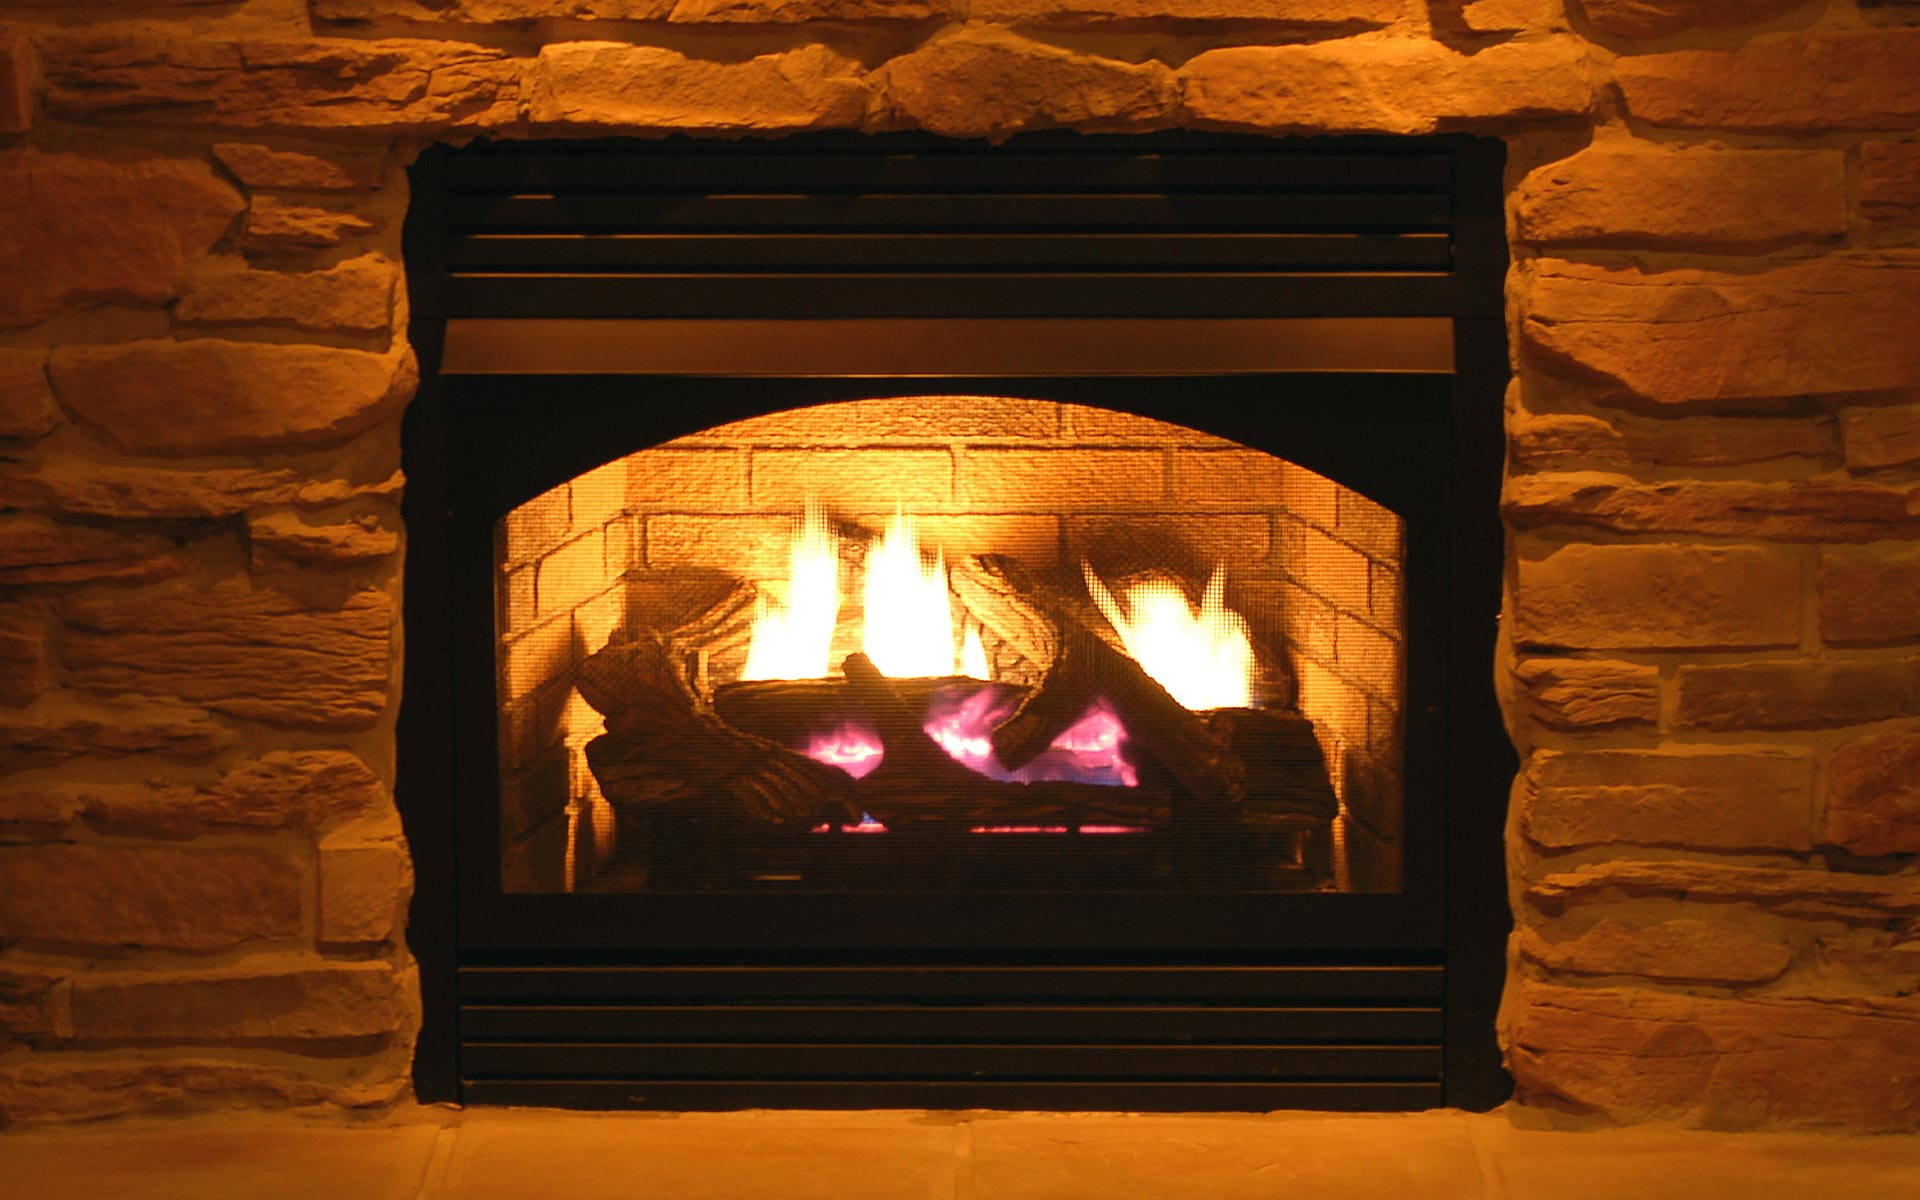 Fireplace HD Wallpapers 2